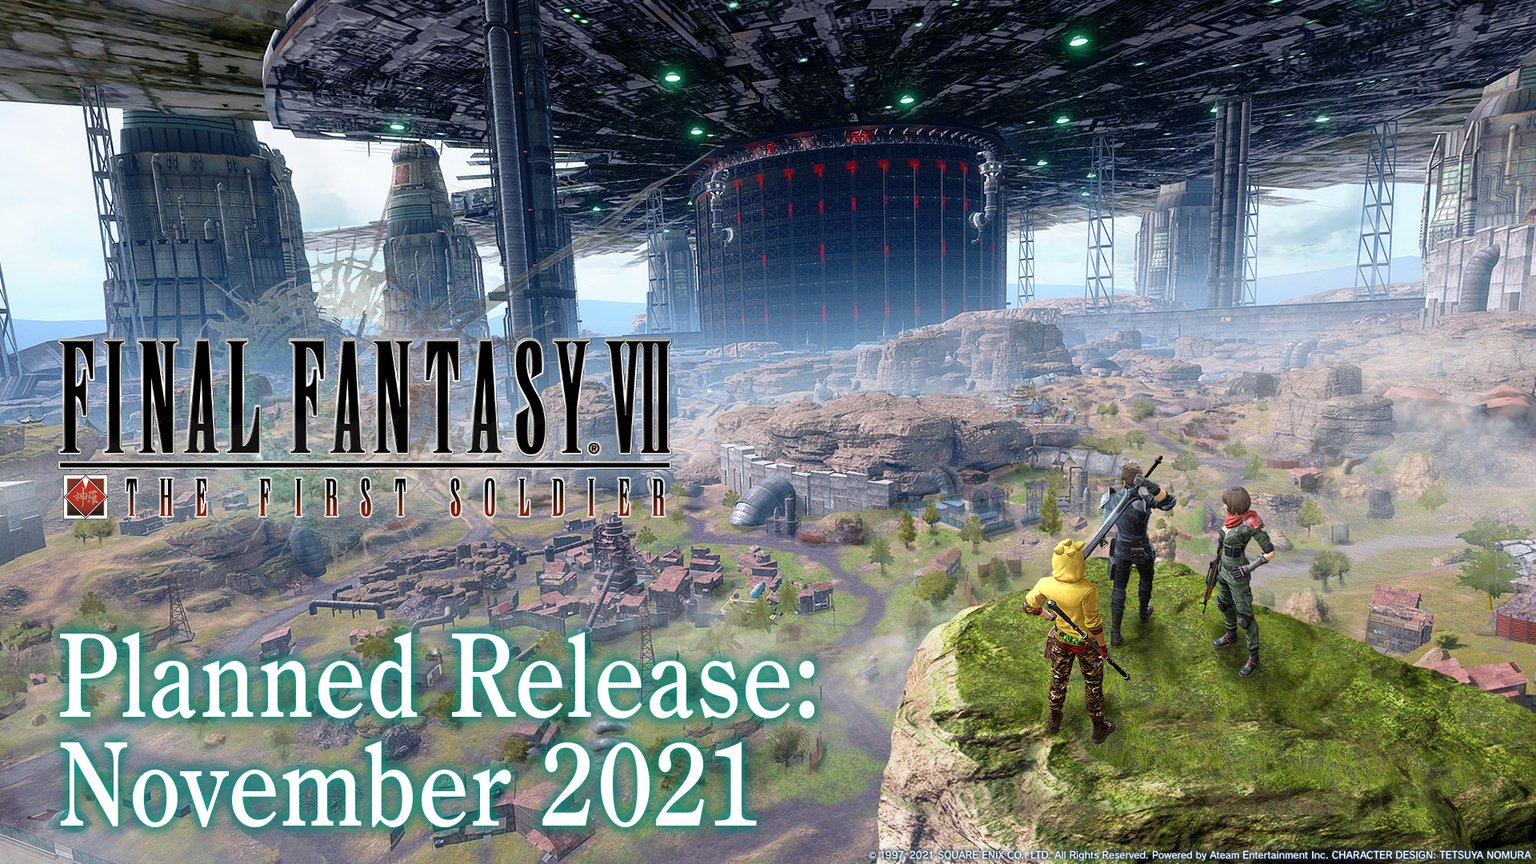 Final Fantasy VII: The First SoldierLaunches in November